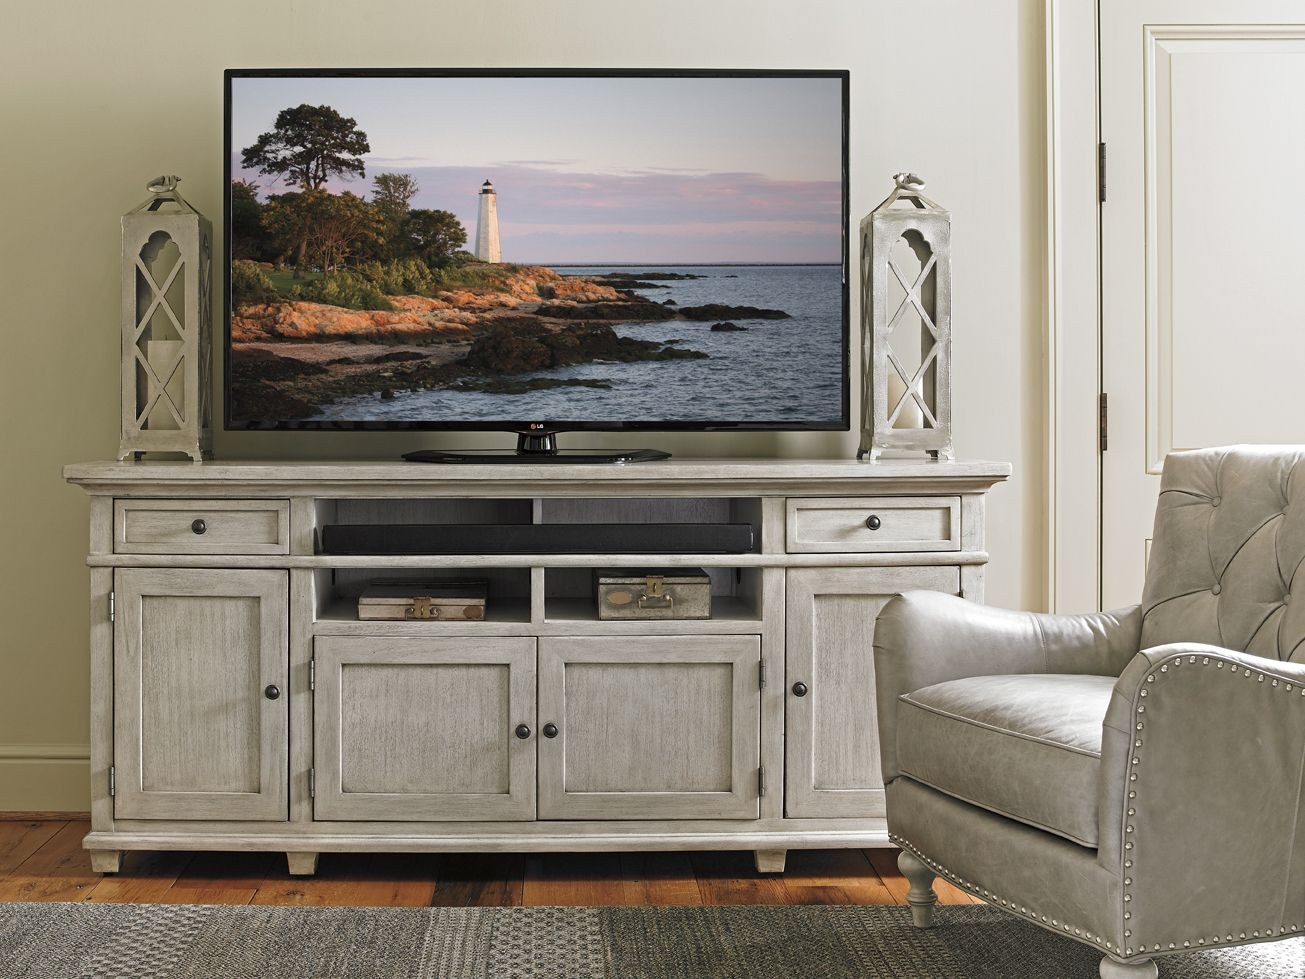 Oyster Bay Kings Point Large Media Console From Lexington 01 0714 908 Coleman Furniture